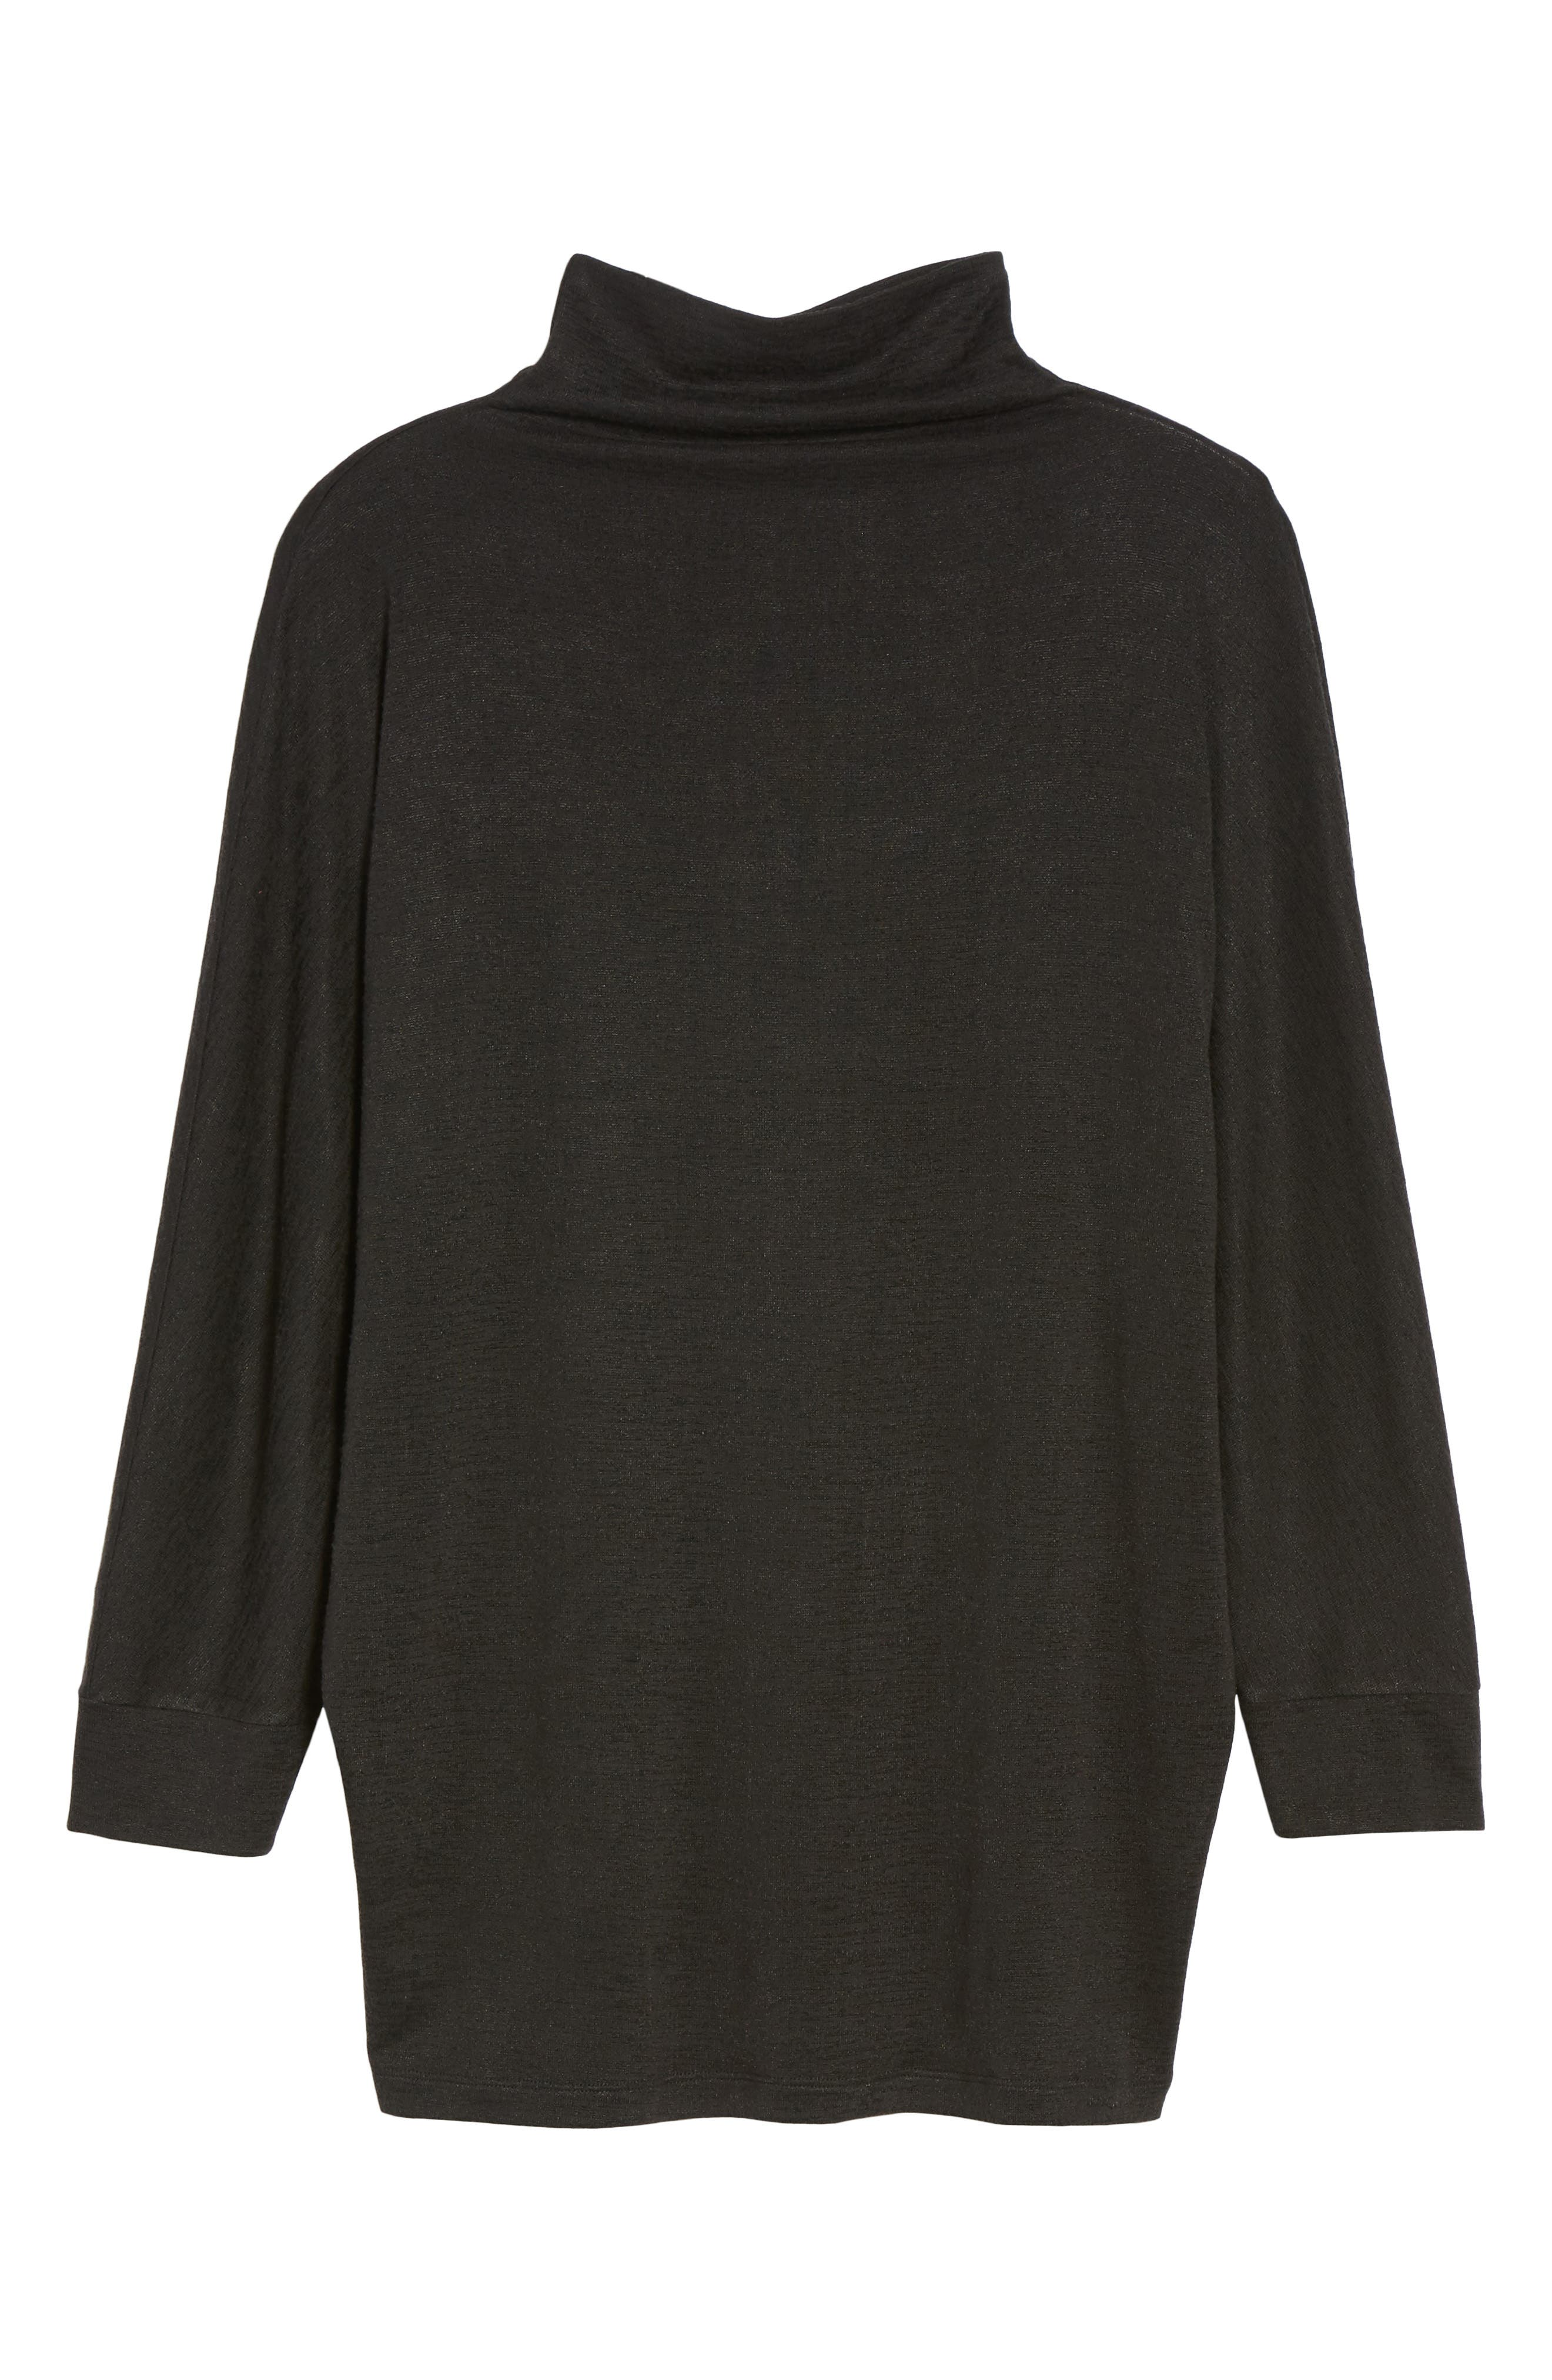 Every Occasion Mockneck Top,                             Alternate thumbnail 6, color,                             004